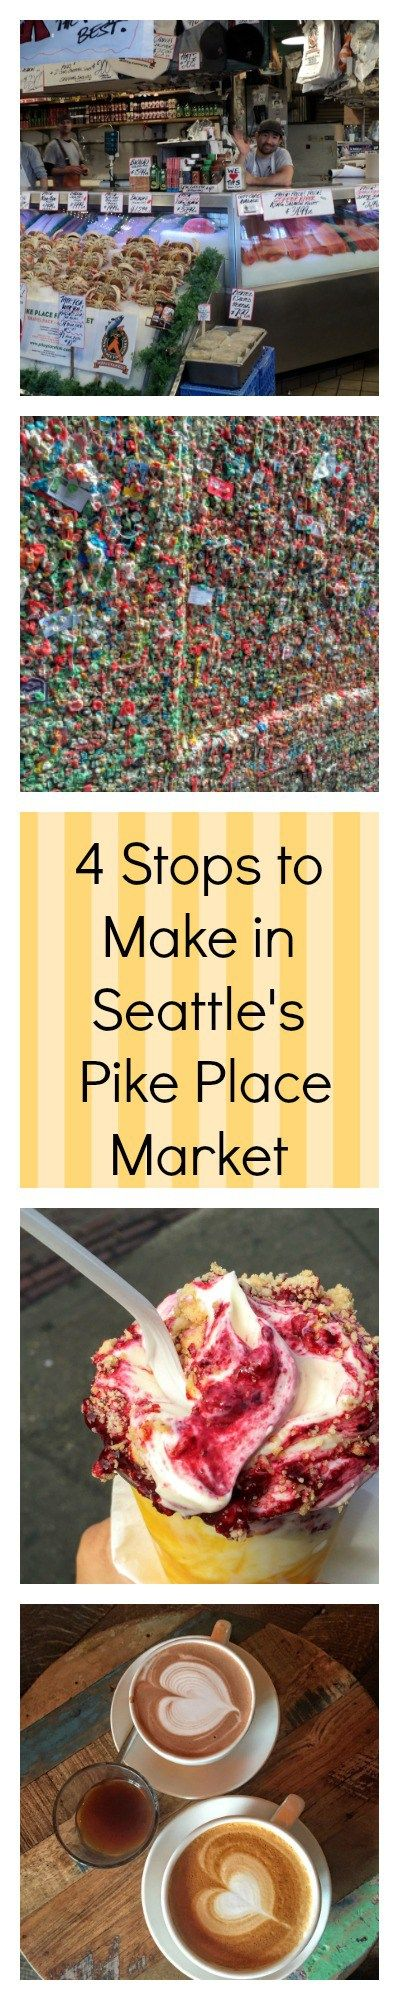 stops to make in Seattle's Pike Place Market